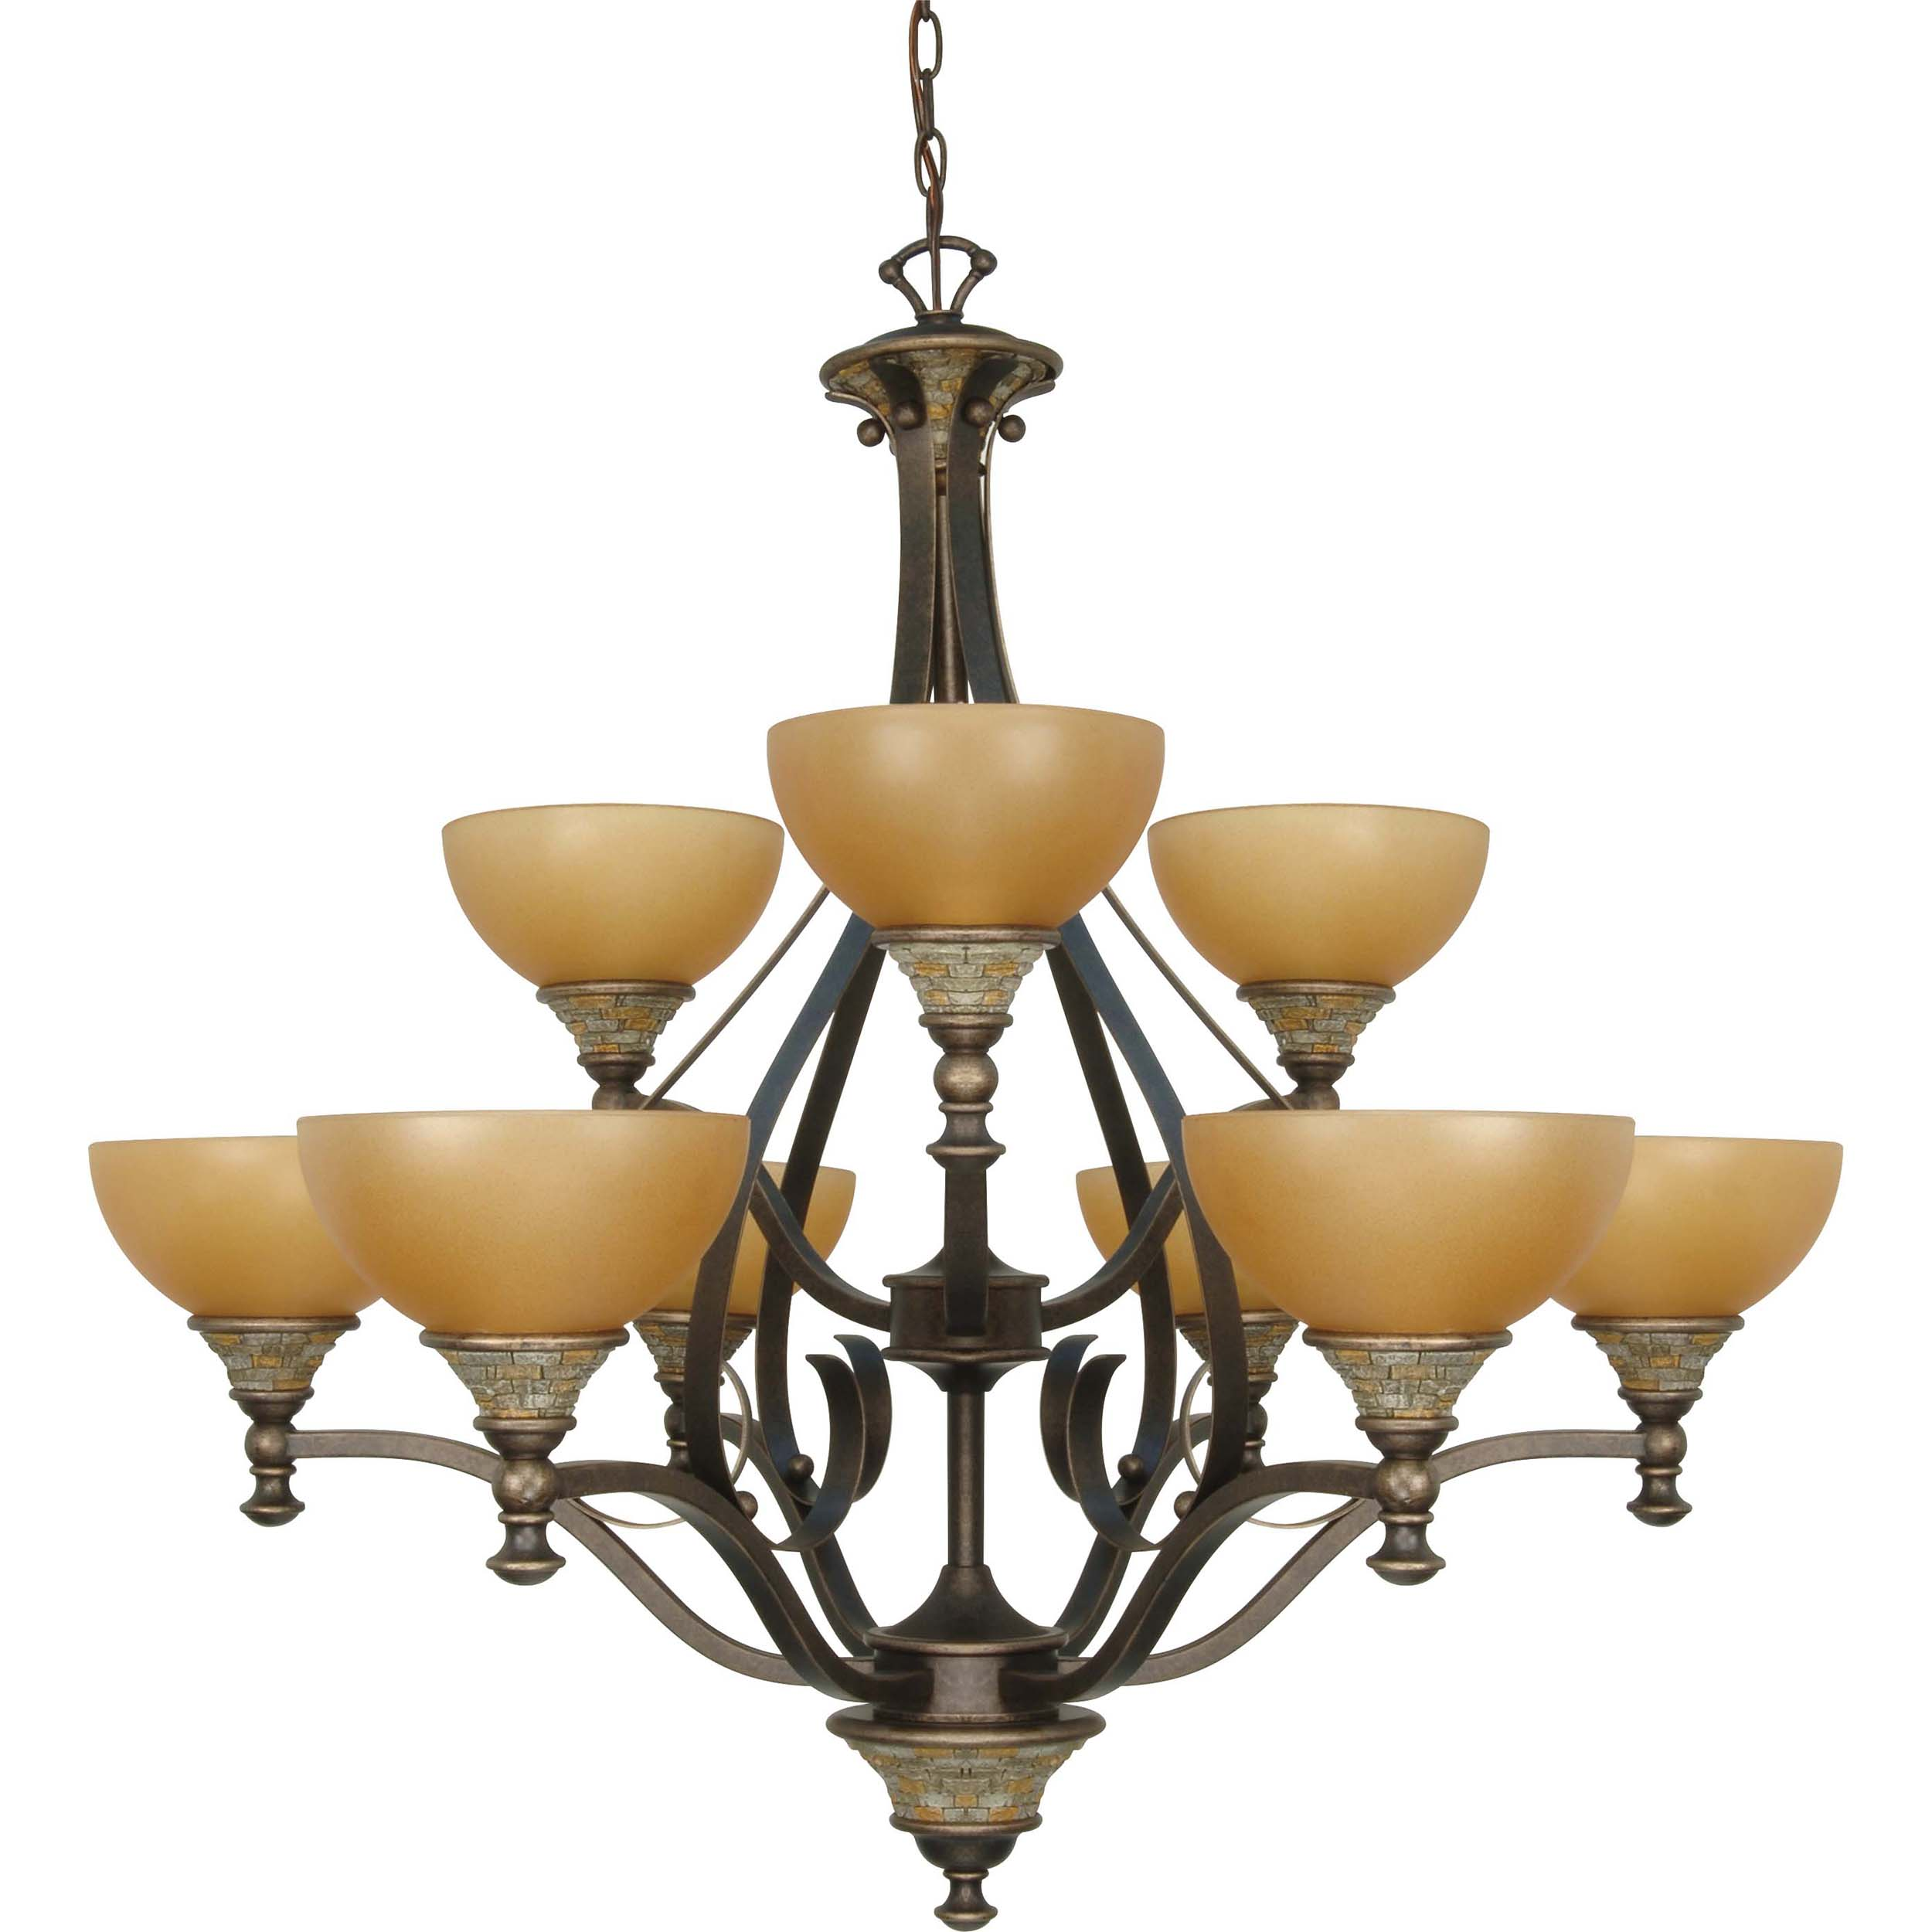 Rockport Tuscano 9 Light Chandelier Dorado Bronze with Sepia Colored Glass Shades - Thumbnail 0